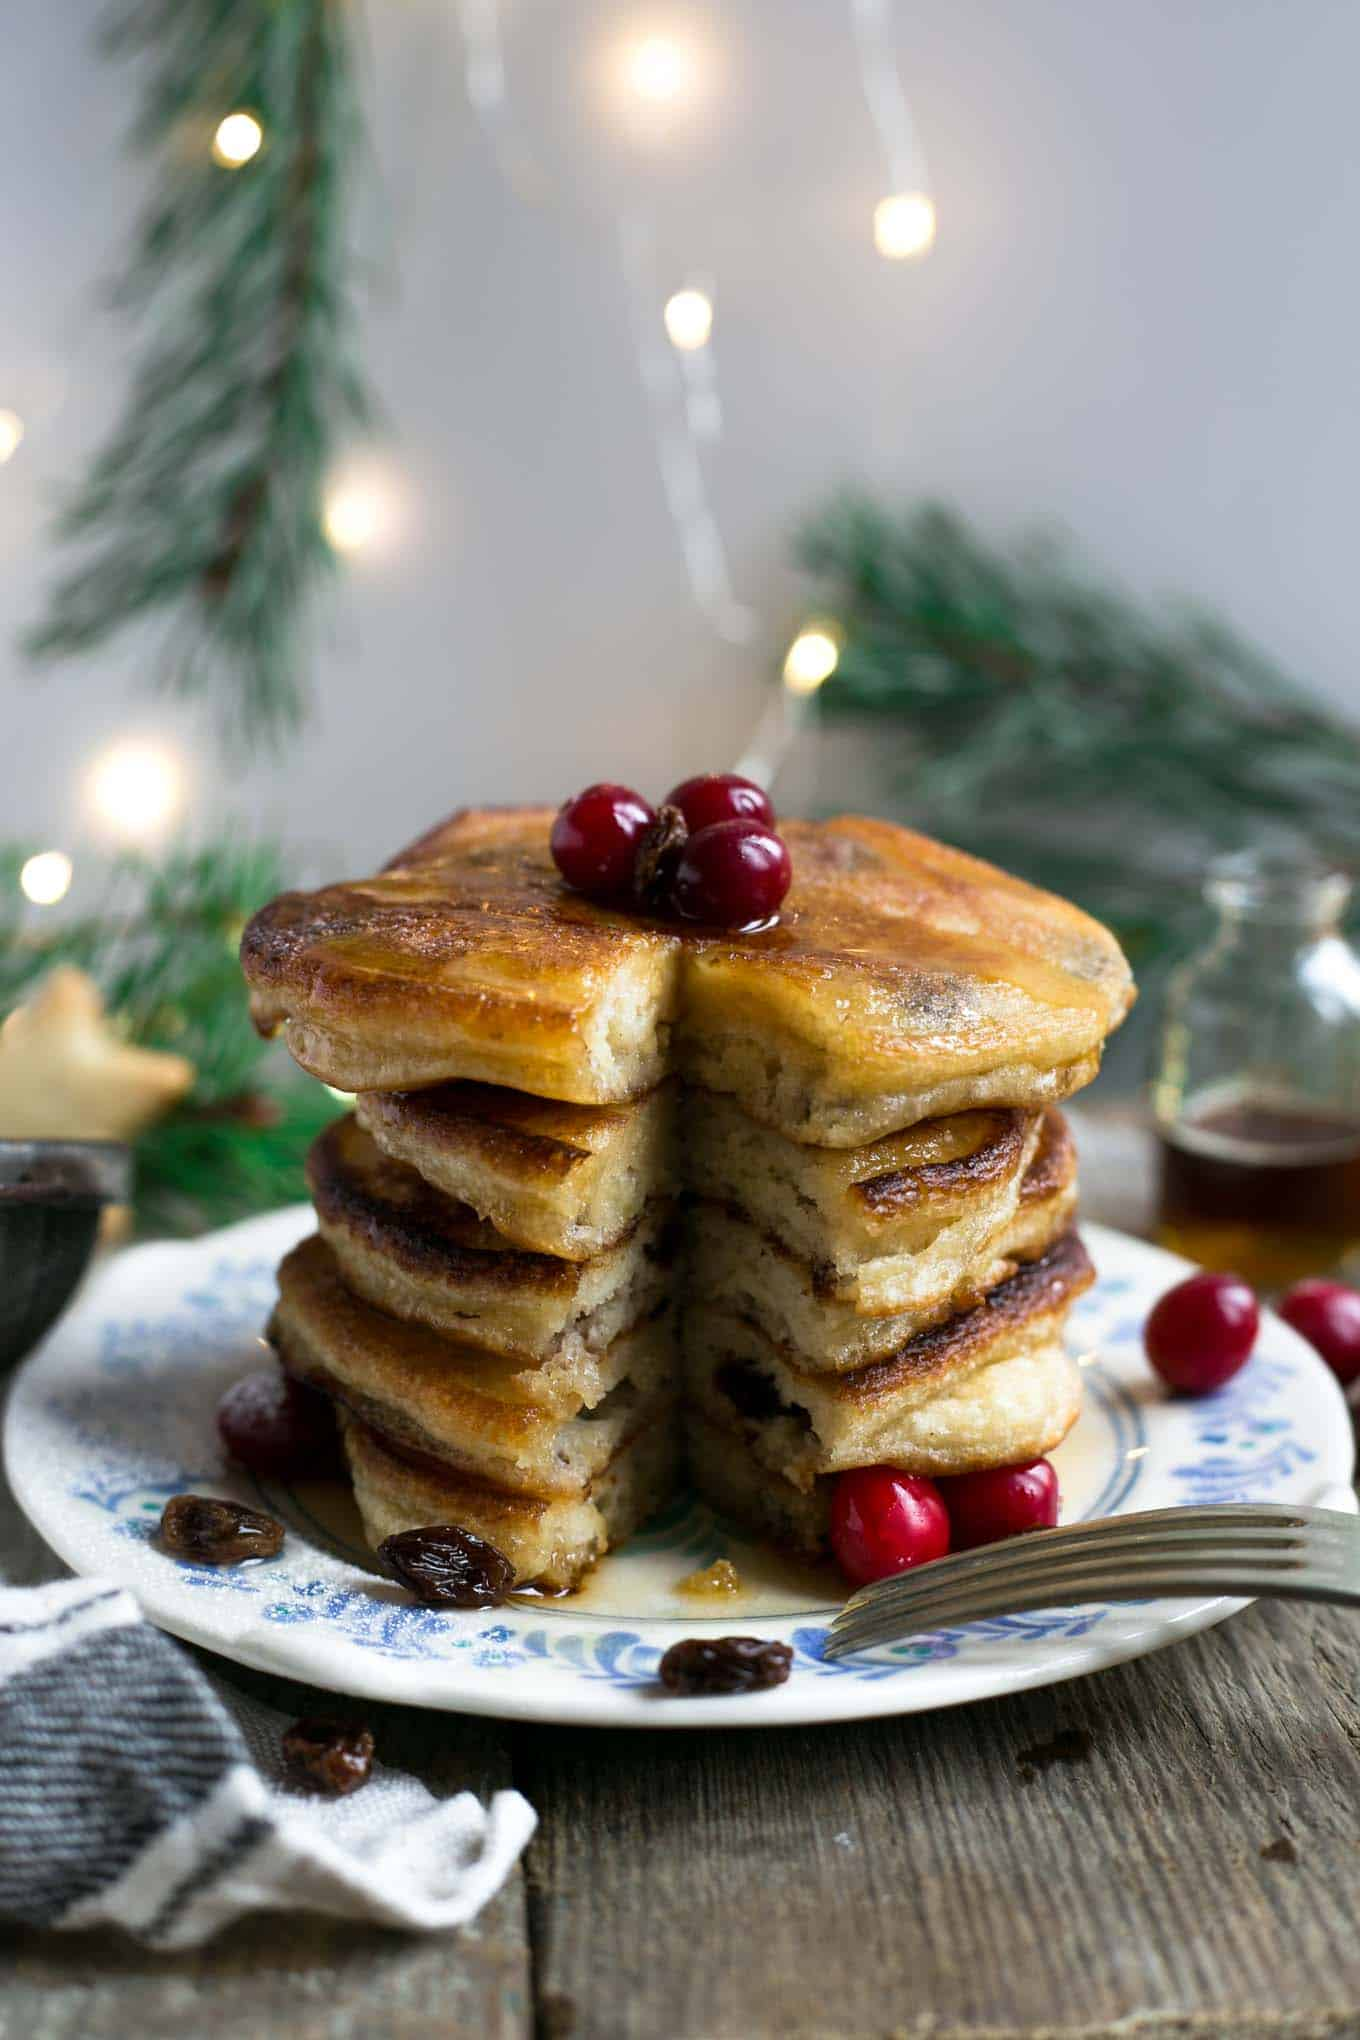 The fluffiest pancakes stuffed with boozy raisins soaked in dark rum! Ultimate #Christmas breakfast or brunch! #vegan #pancakes | via @annabanana.co